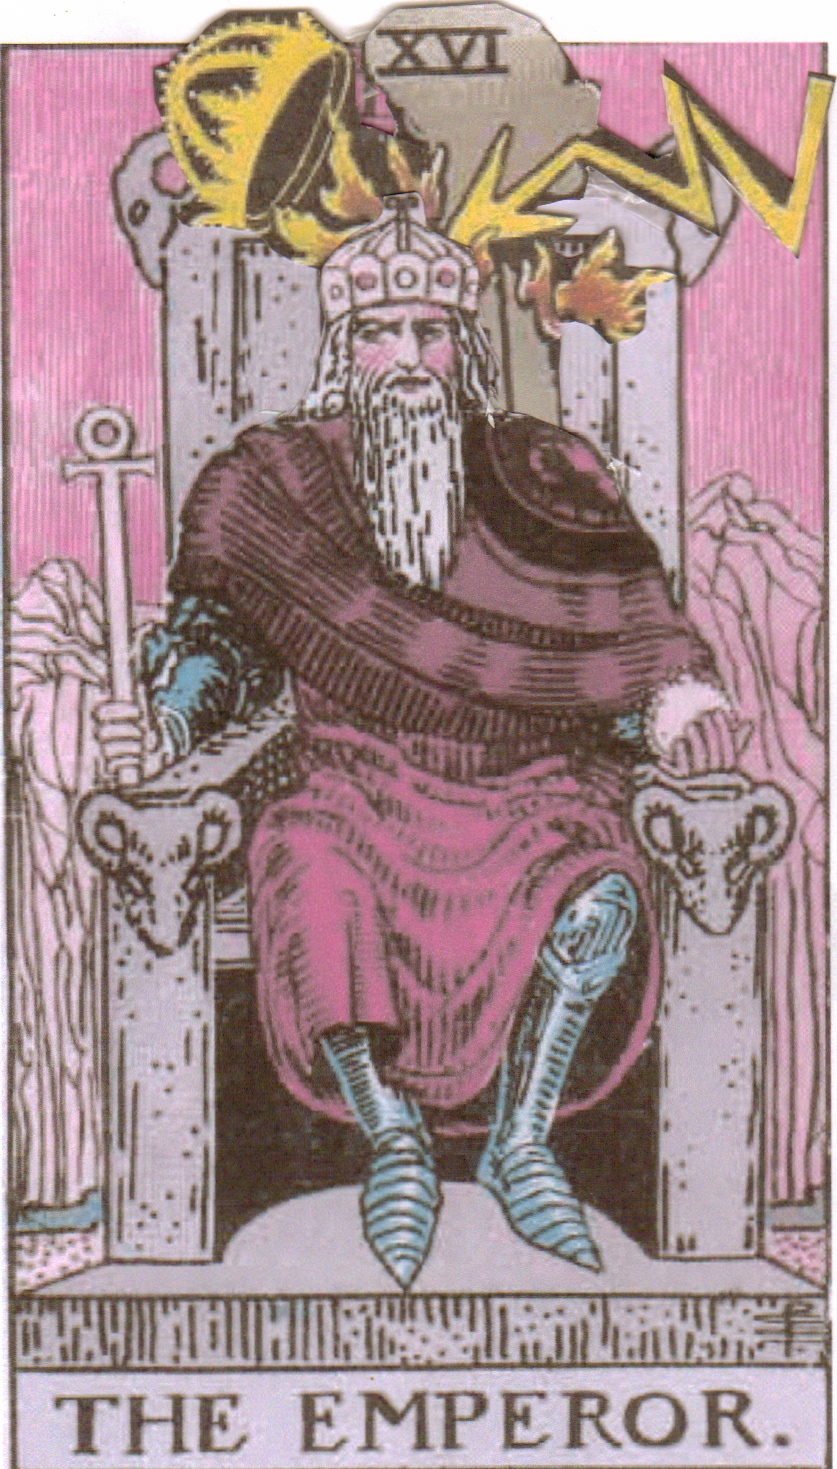 the emperor tarot dating 170 discussion posts karen ⊰✿ said: tarot card challengeduration: you set the pacerules:there are 78 cards in a tarot deck split between 22 majo.